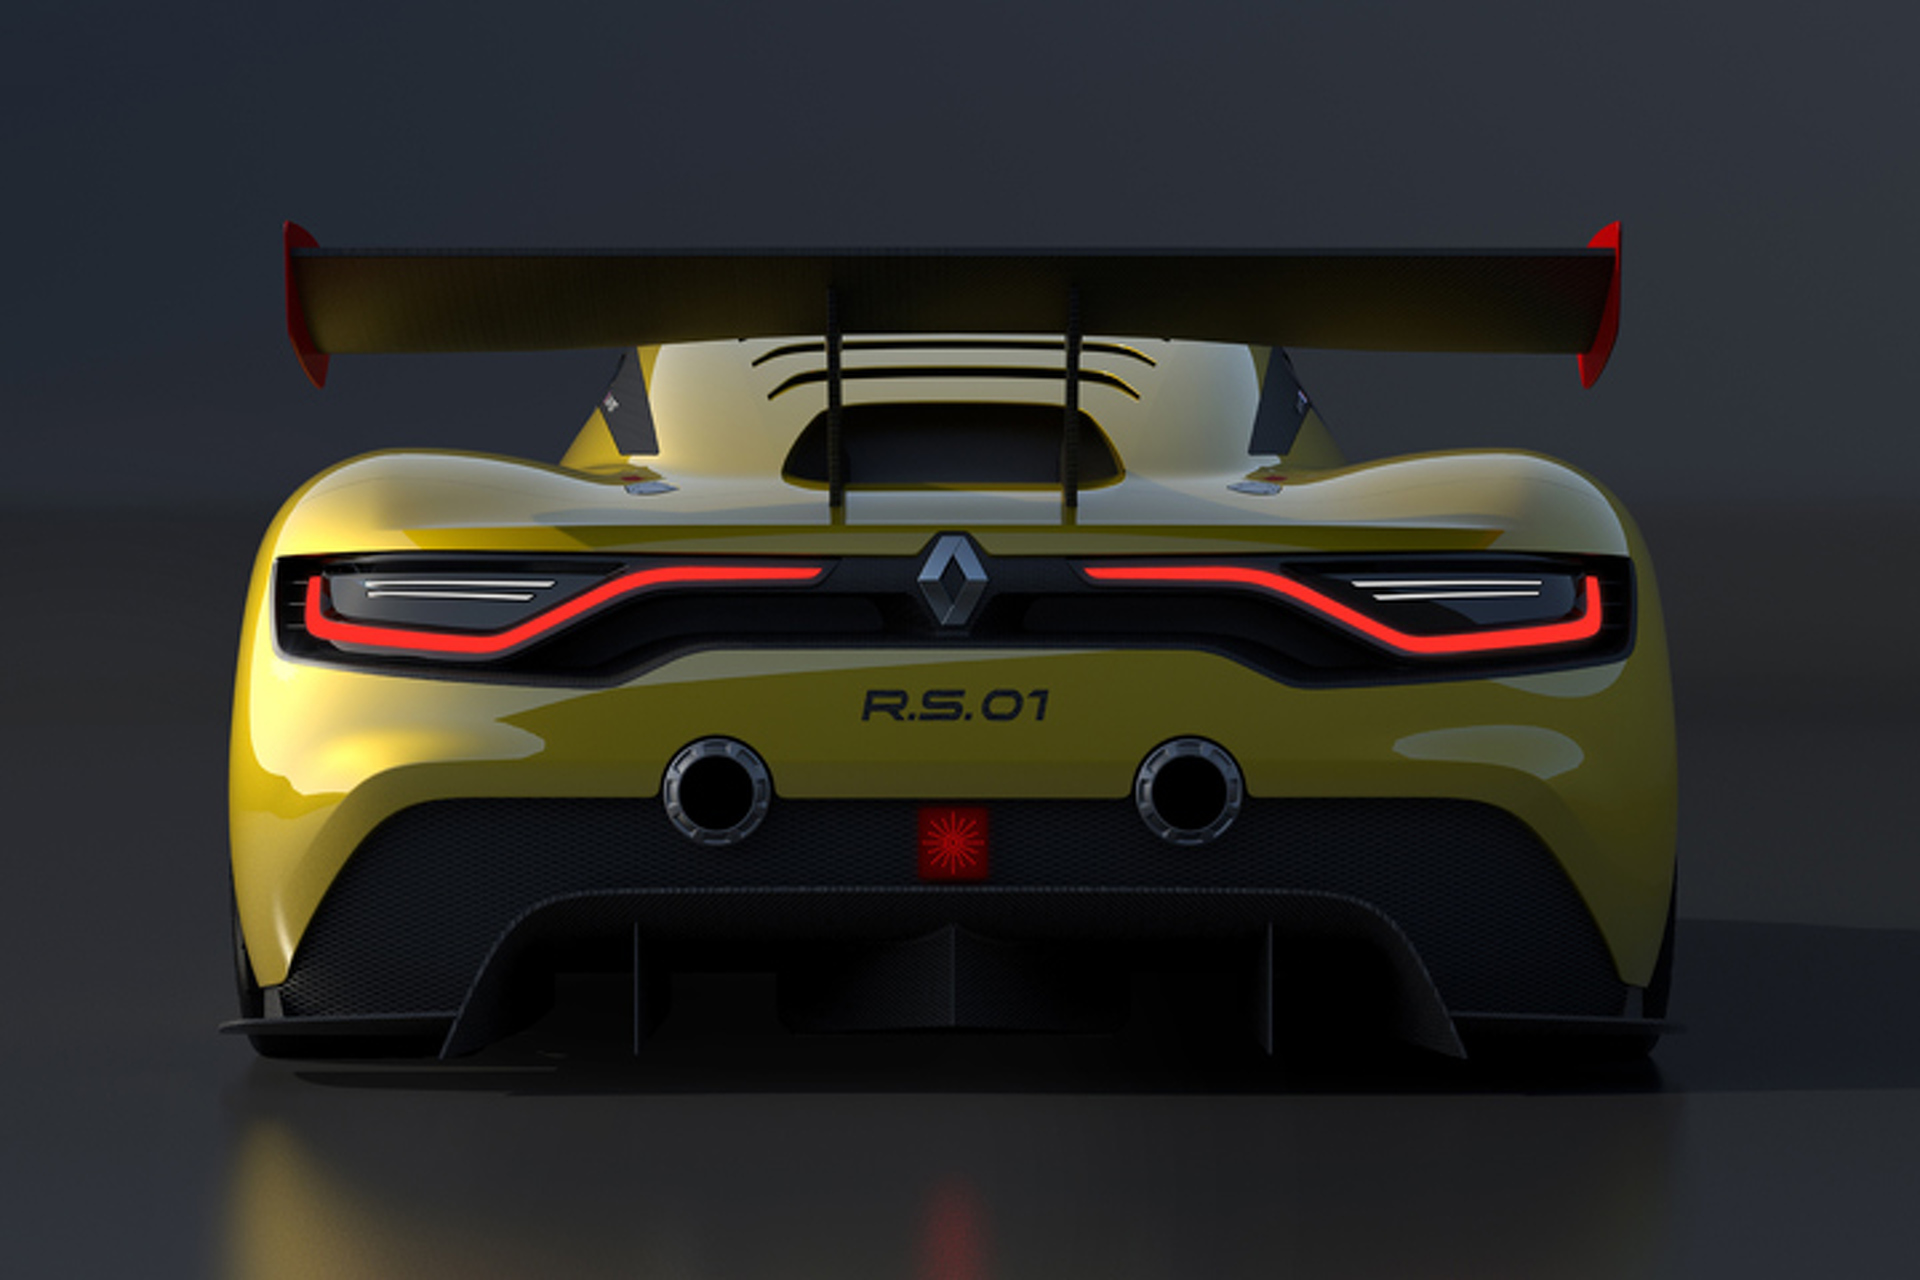 Renaultsport RS 01: The Racecar of Our Dreams